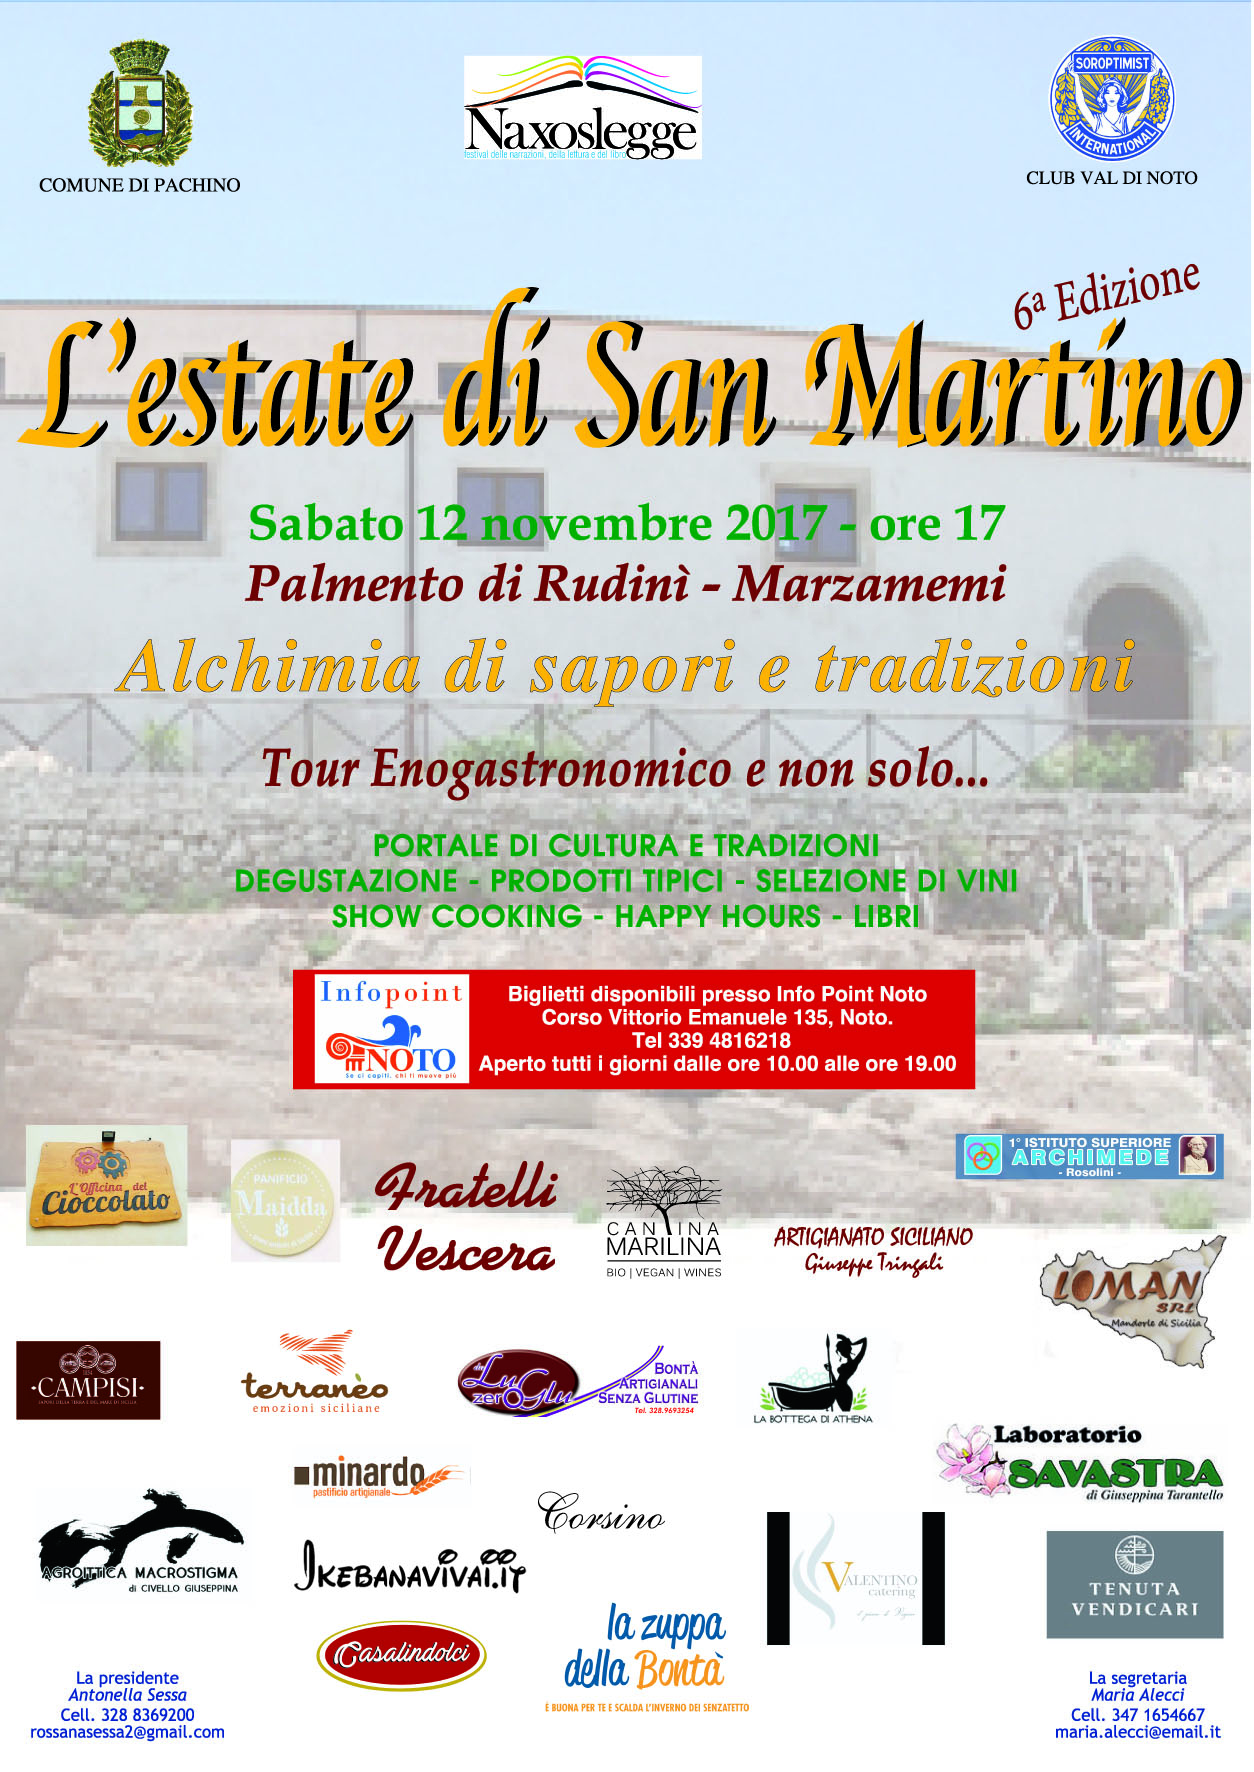 Tutto pronto a Pachino per l'Estate di San Martino